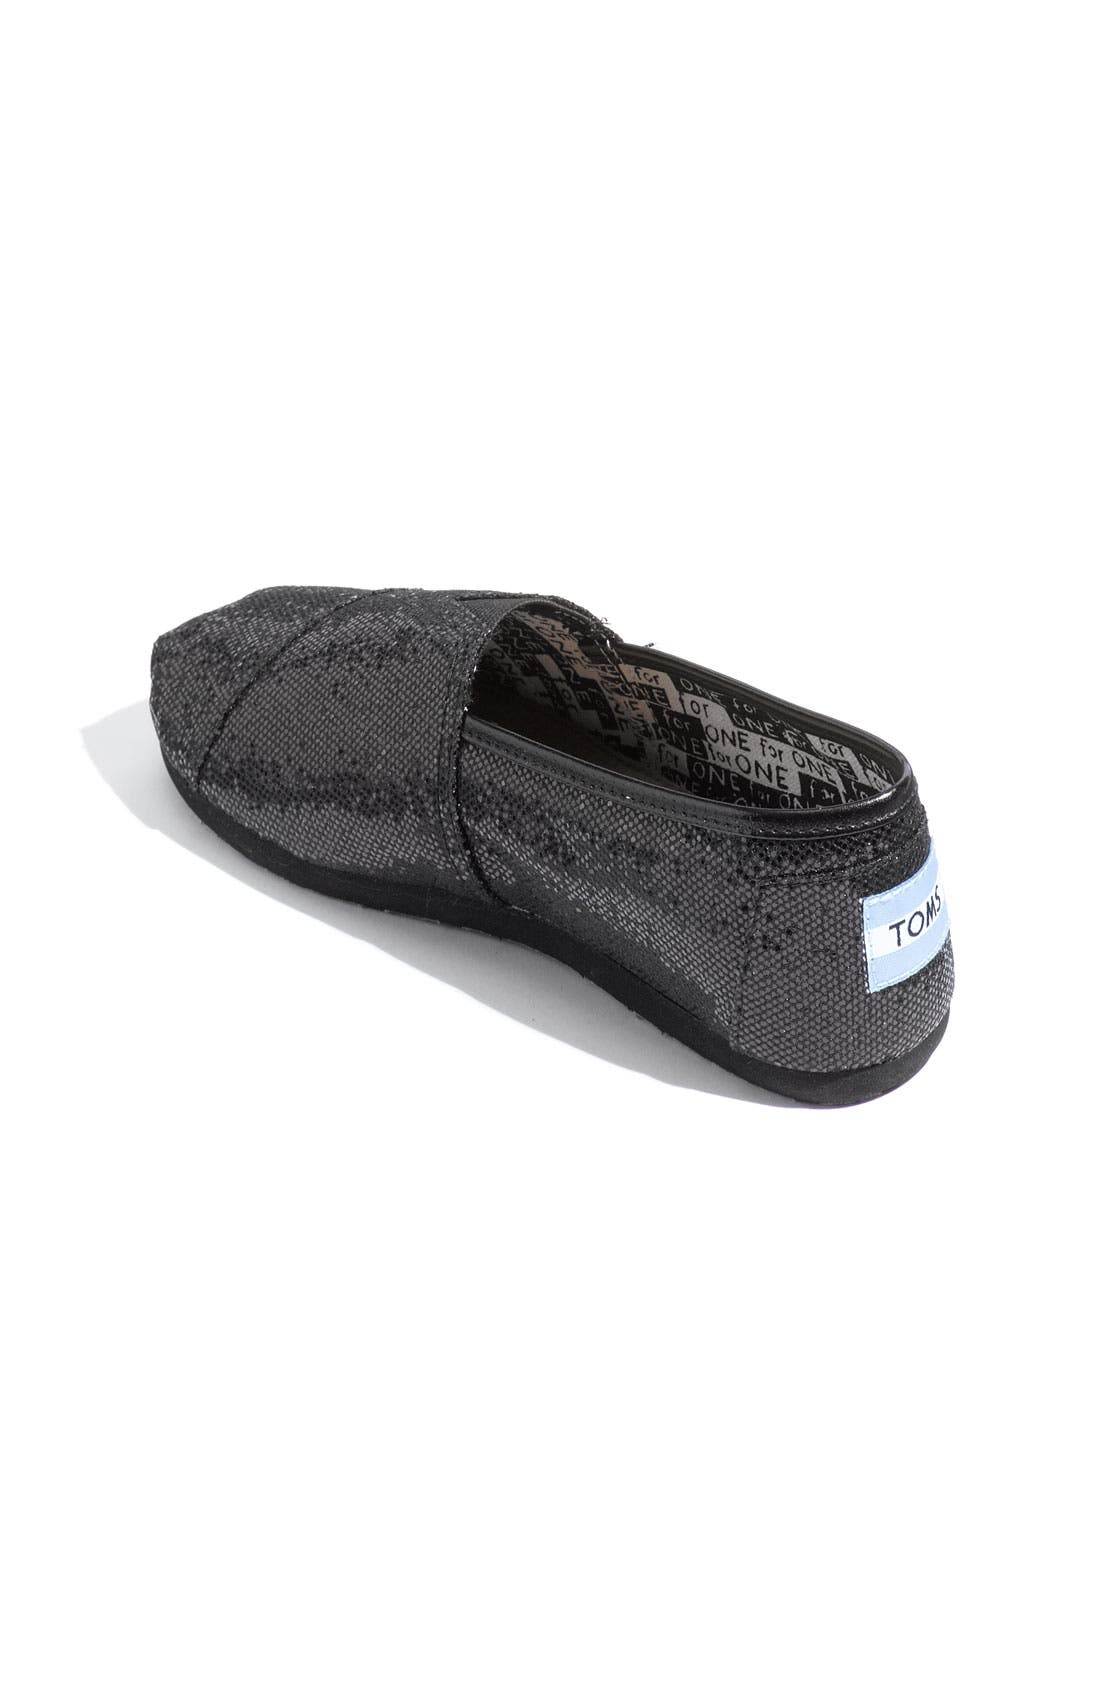 Alternate Image 2  - TOMS 'Classic Youth - Glitter' Slip-On (Toddler, Little Kid & Big Kid)